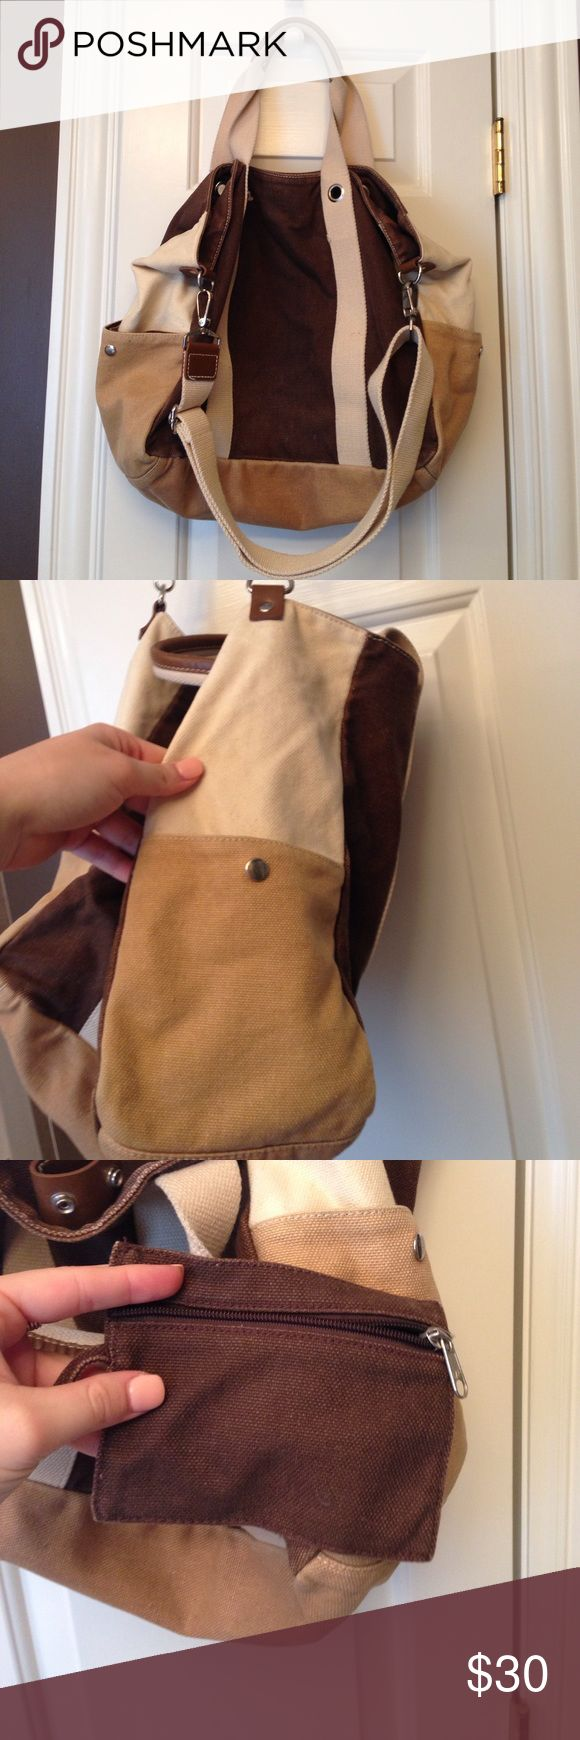 Gap Tote Bag Brown and khaki colored bag. Two side pockets and zipper pouch. Great condition GAP Bags Totes